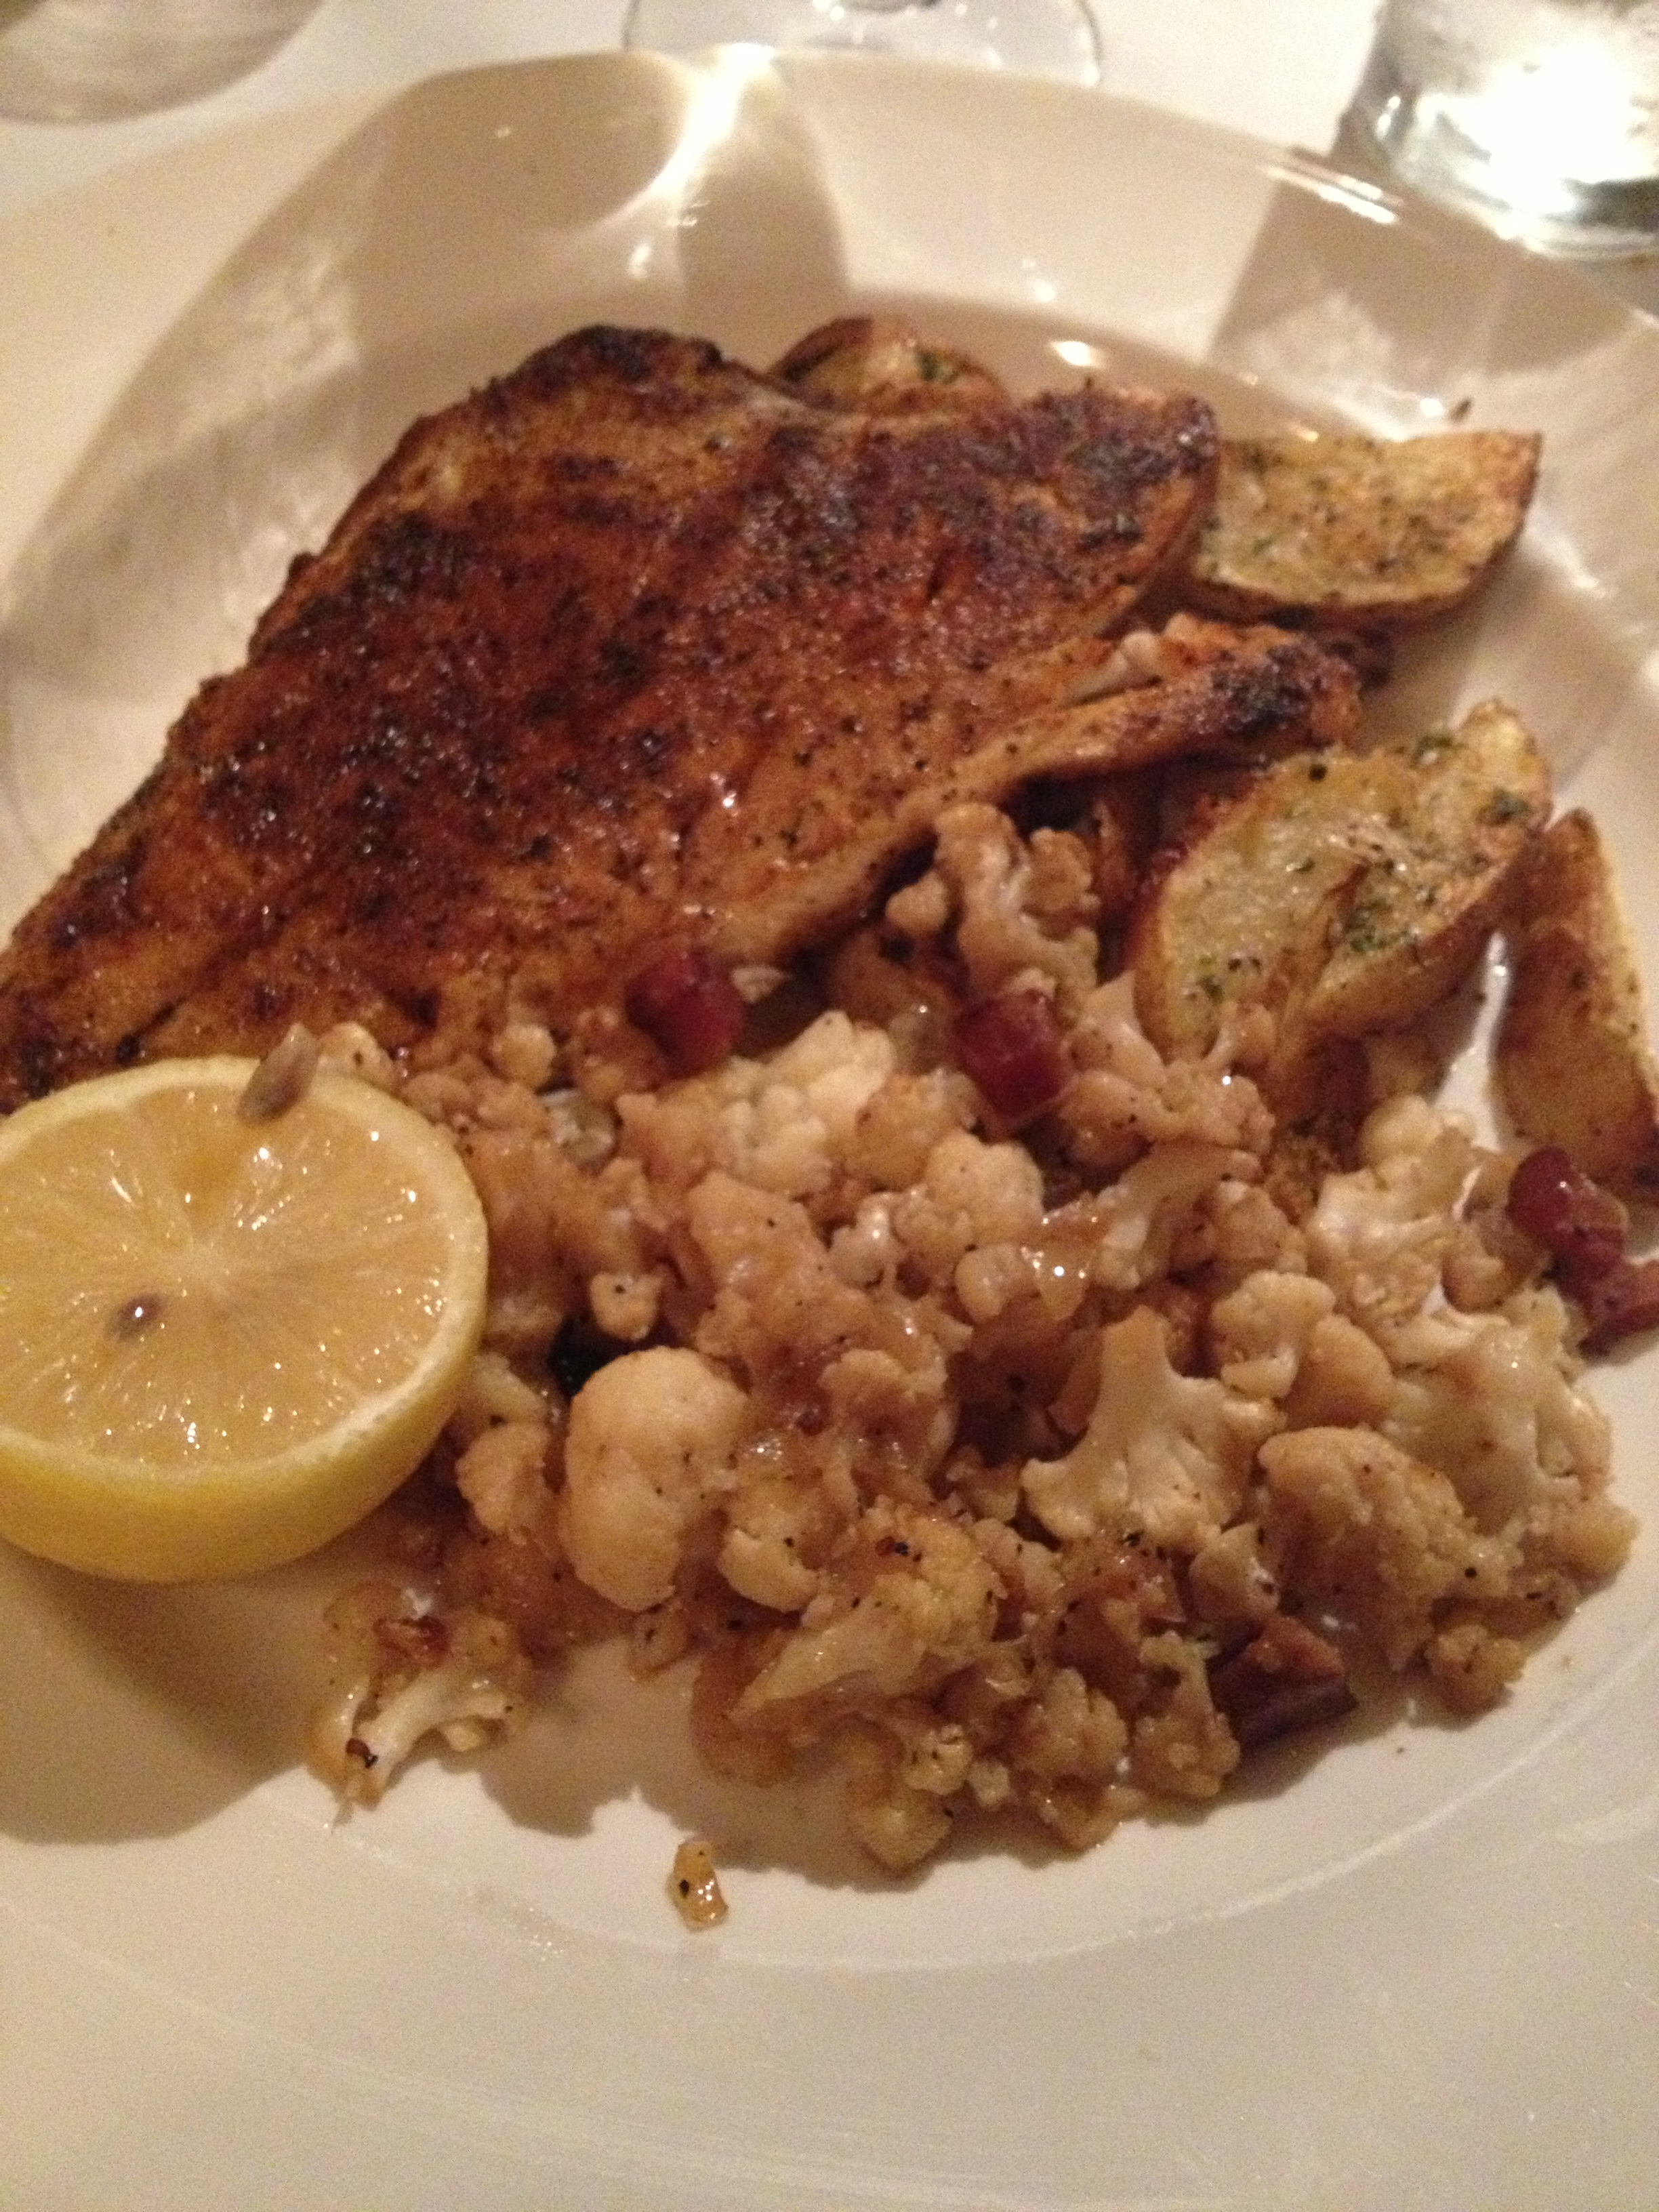 The Red Snapper (blackened) with Roasted Cauliflower and Potatoes